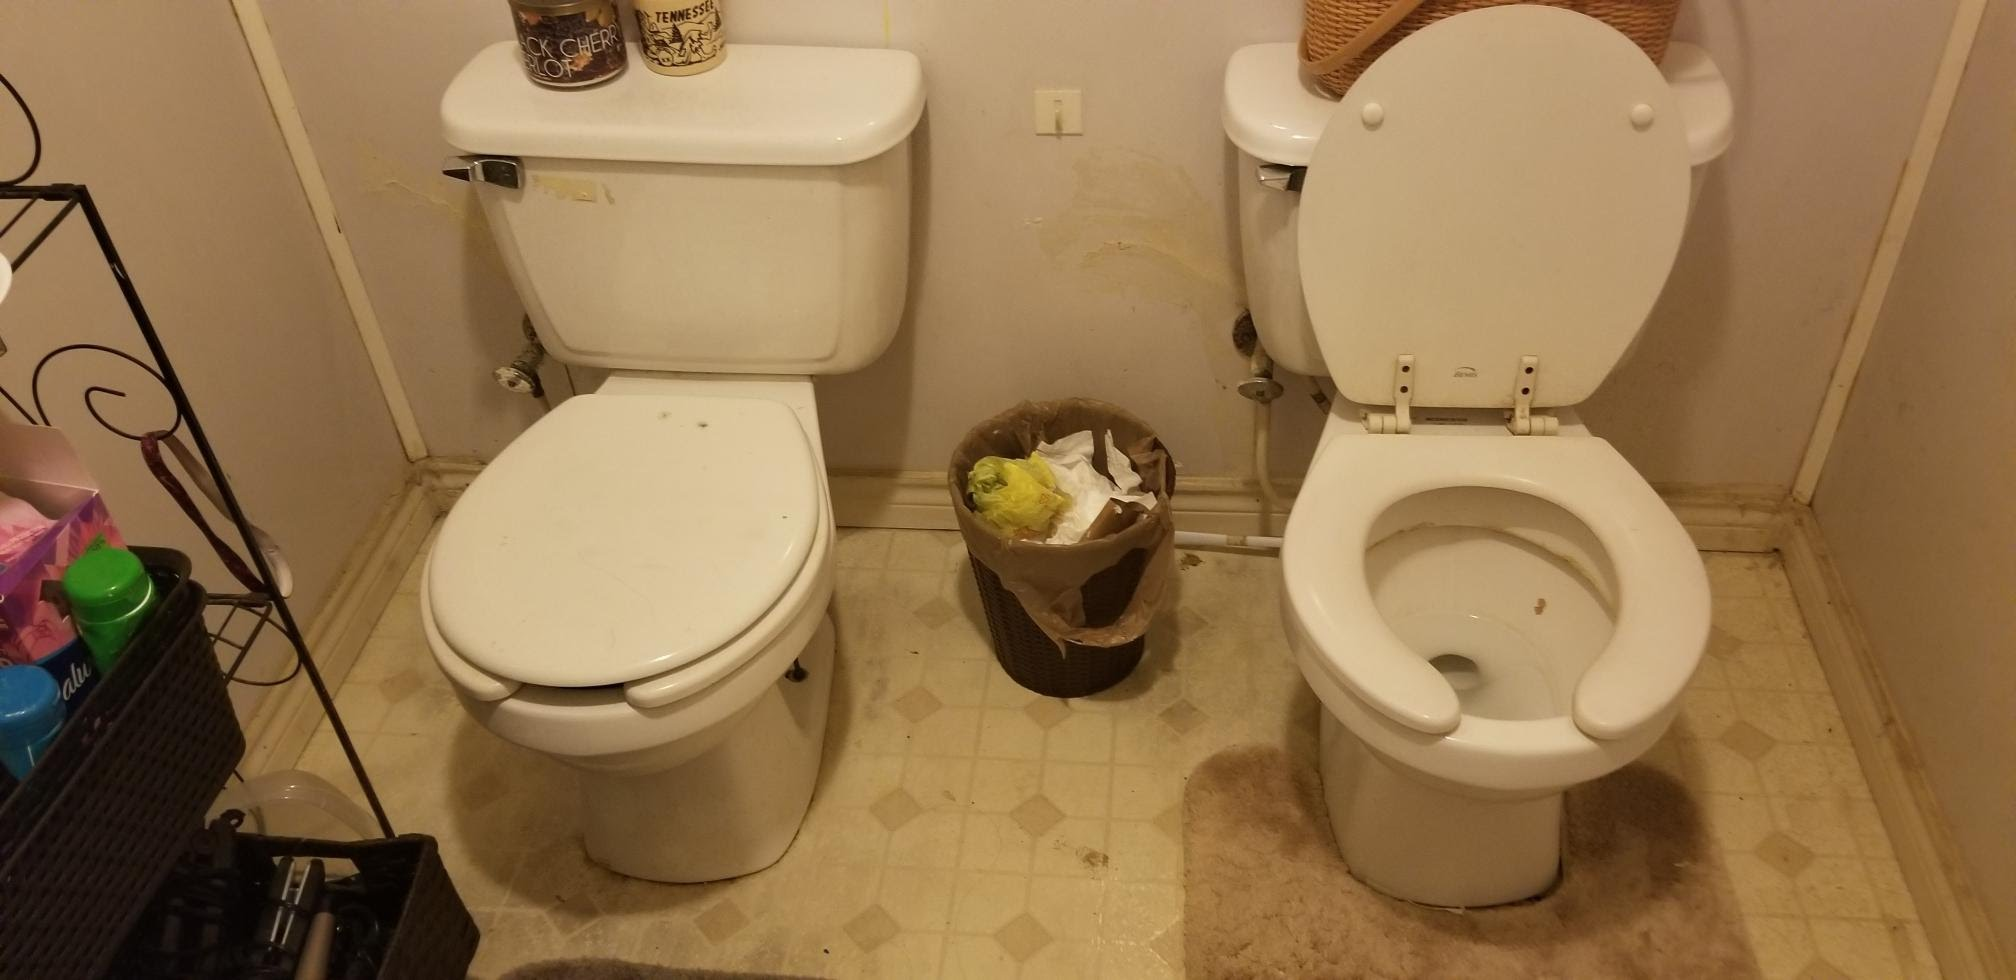 dueling toilets during a home inspection